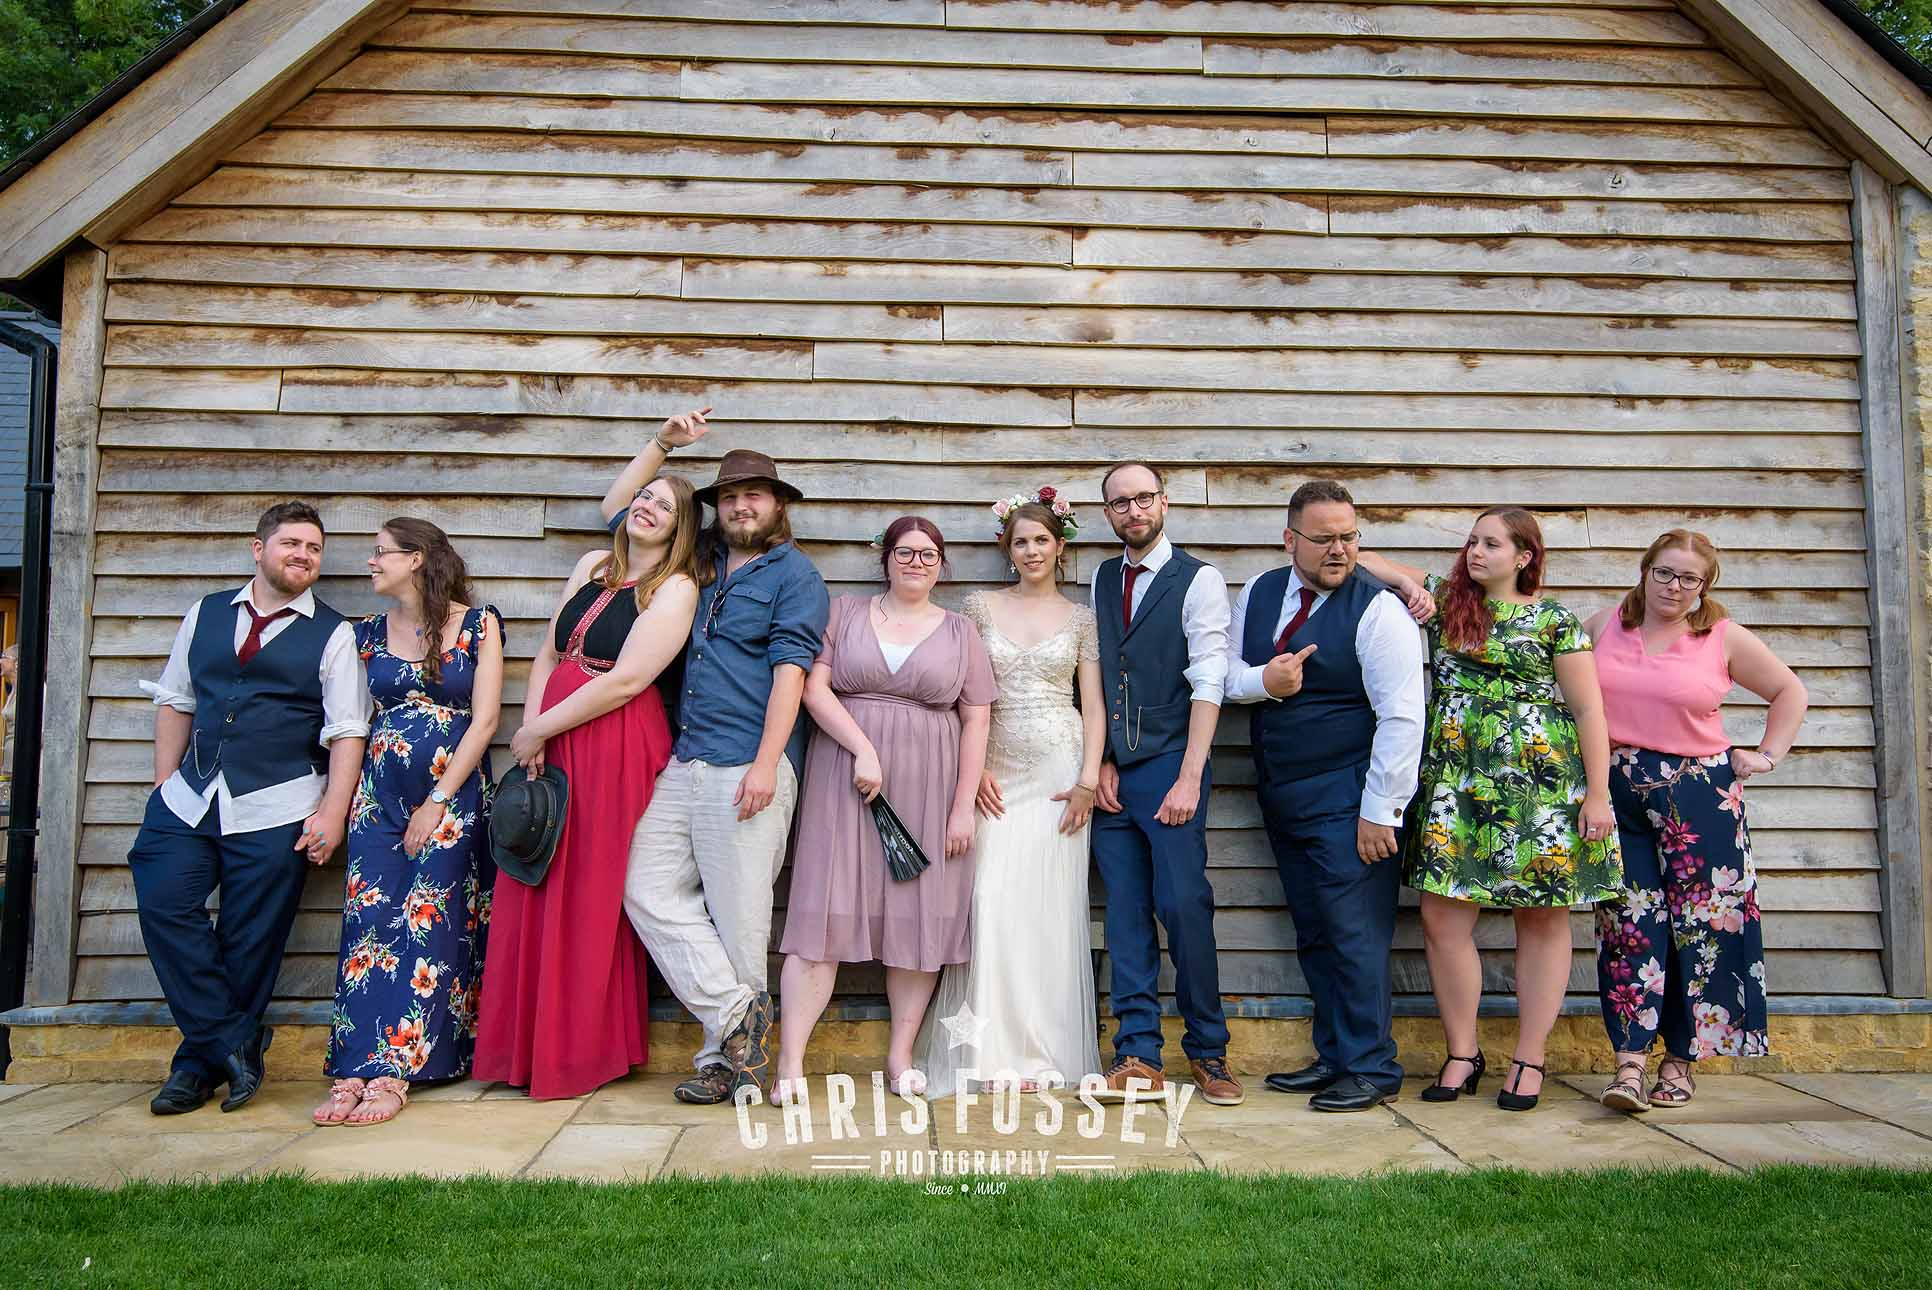 The-Barn-Upcote-Farm-Withington-Wedding-Photography-Gloucestershire-Lauren-Tom (69 of 69)